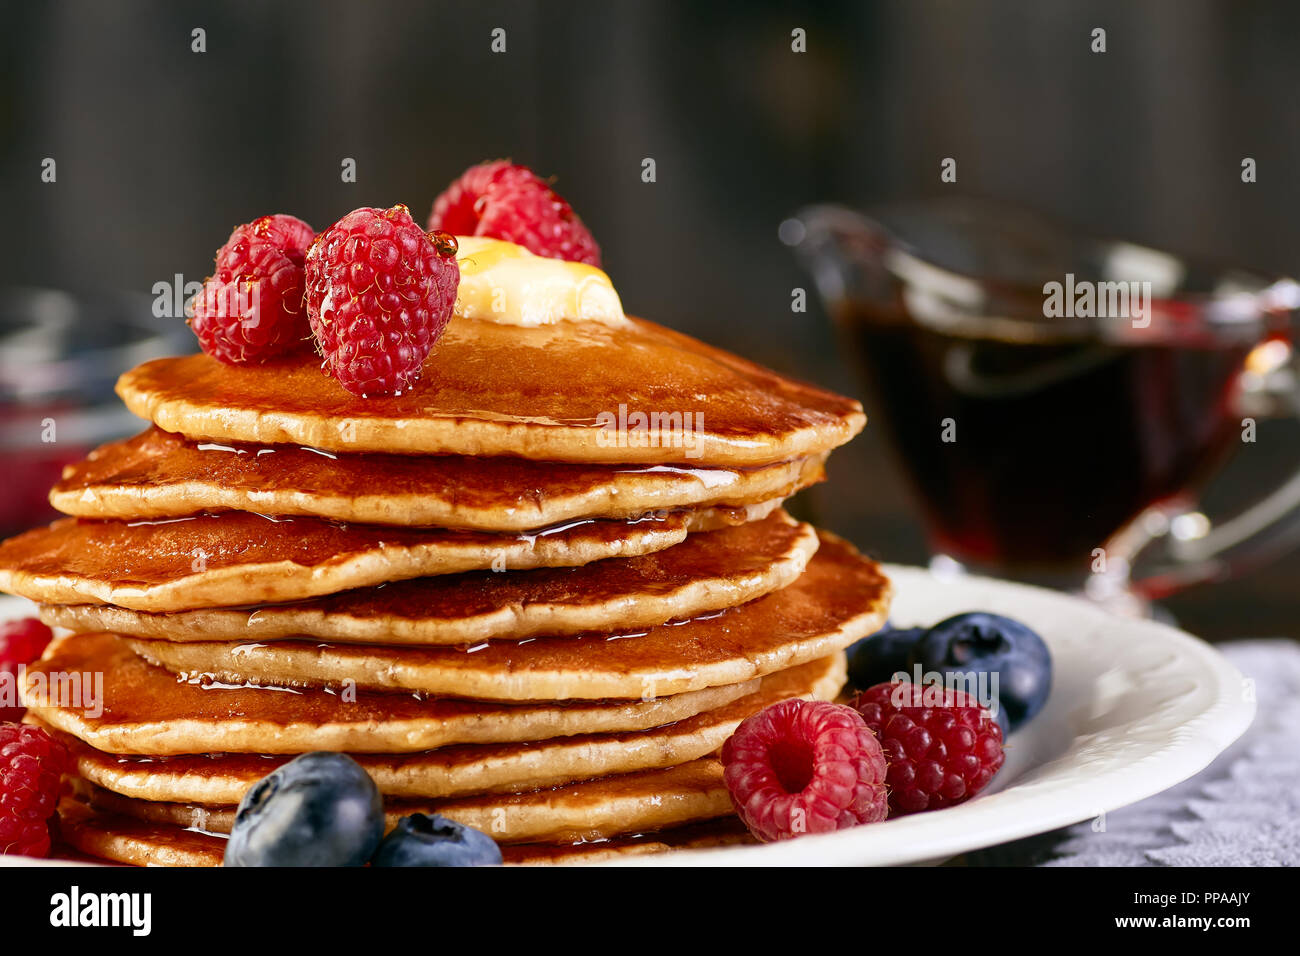 Stack of pancakes with berries and maple syrup - Stock Image